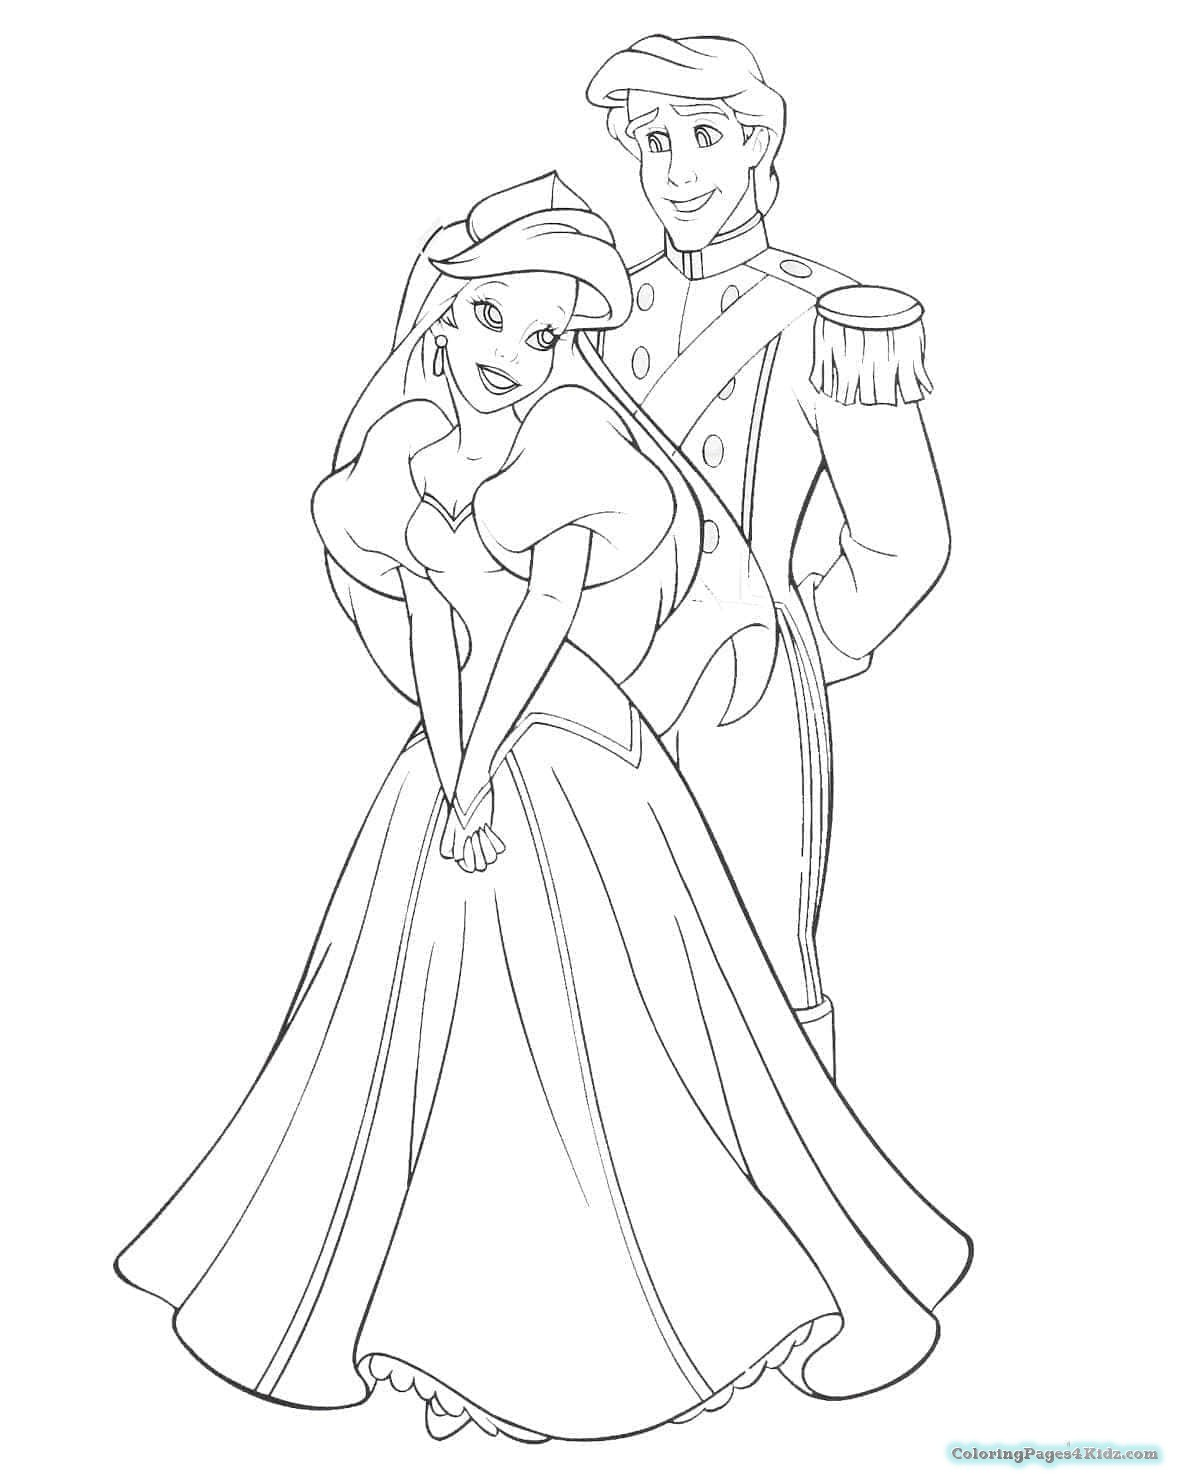 ariel princess colouring pages disney princesses best coloring pages minister coloring ariel princess colouring pages